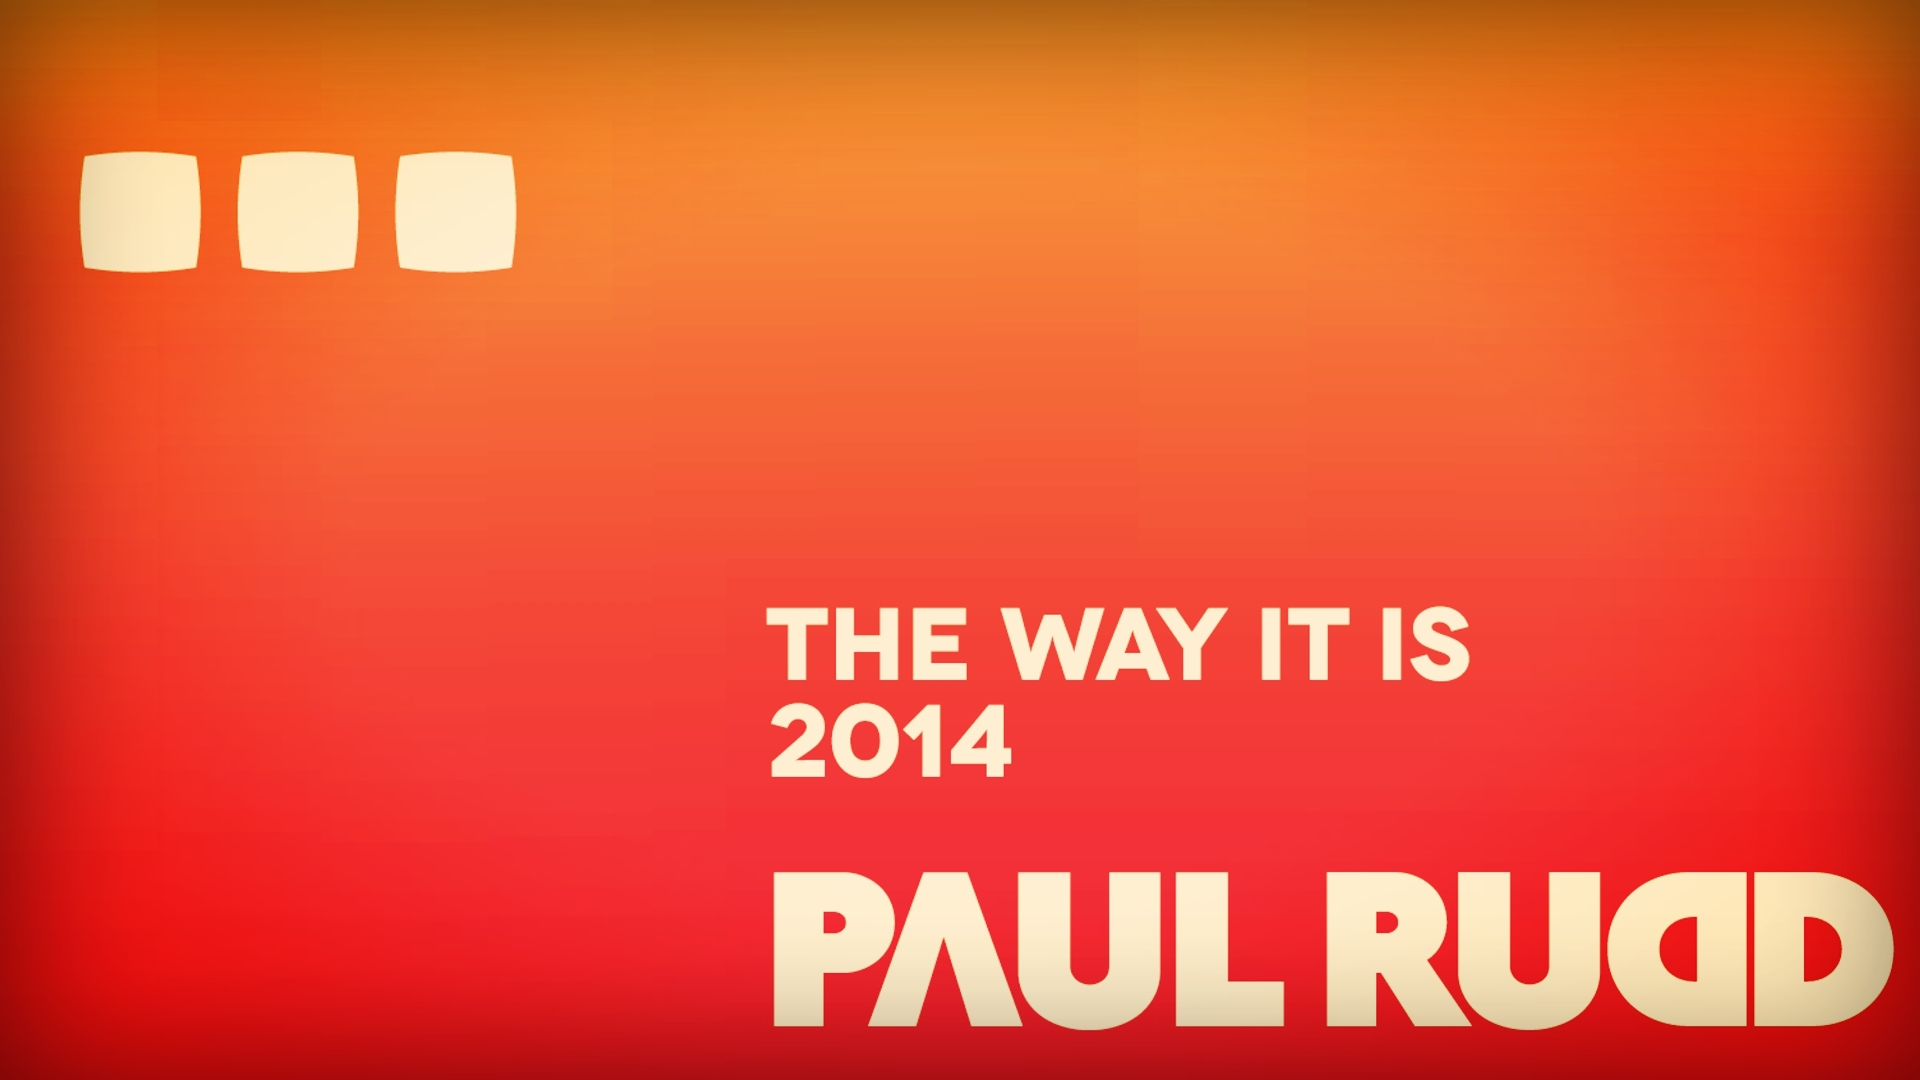 Paul Rudd - The Way It Is 2014